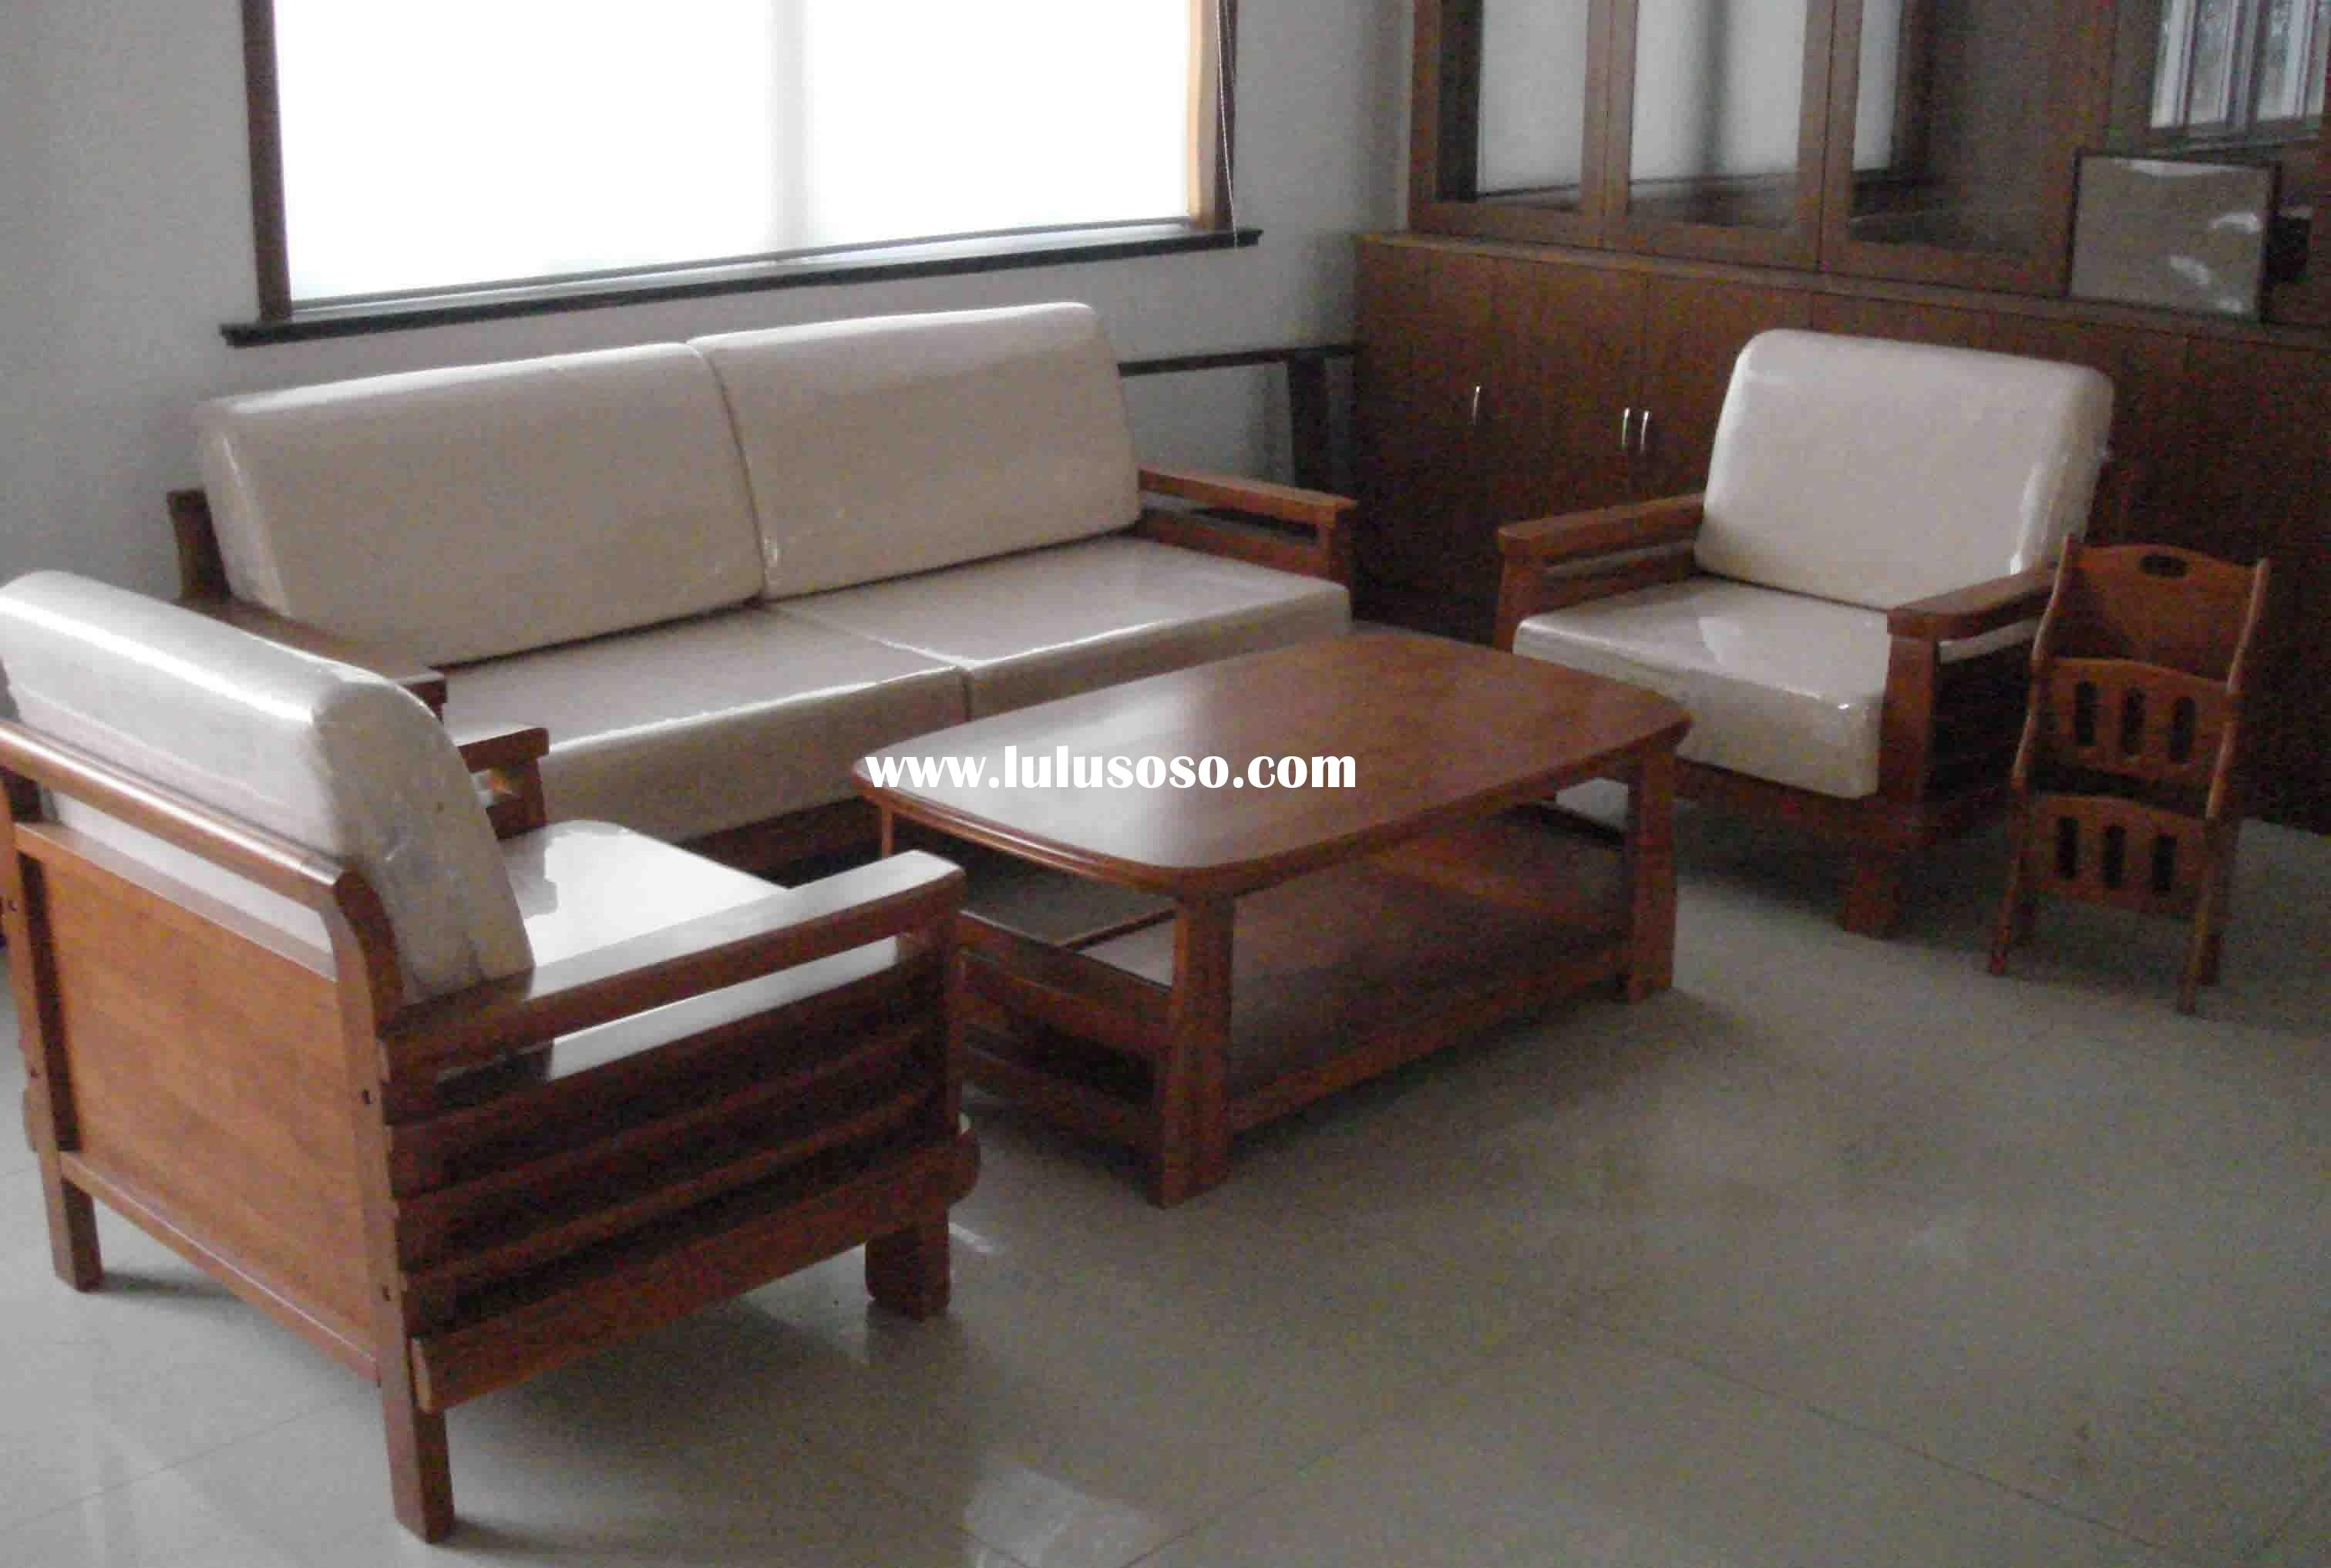 Wooden sofa sets for sale - Price,China Manufacturer,Supplier 69293